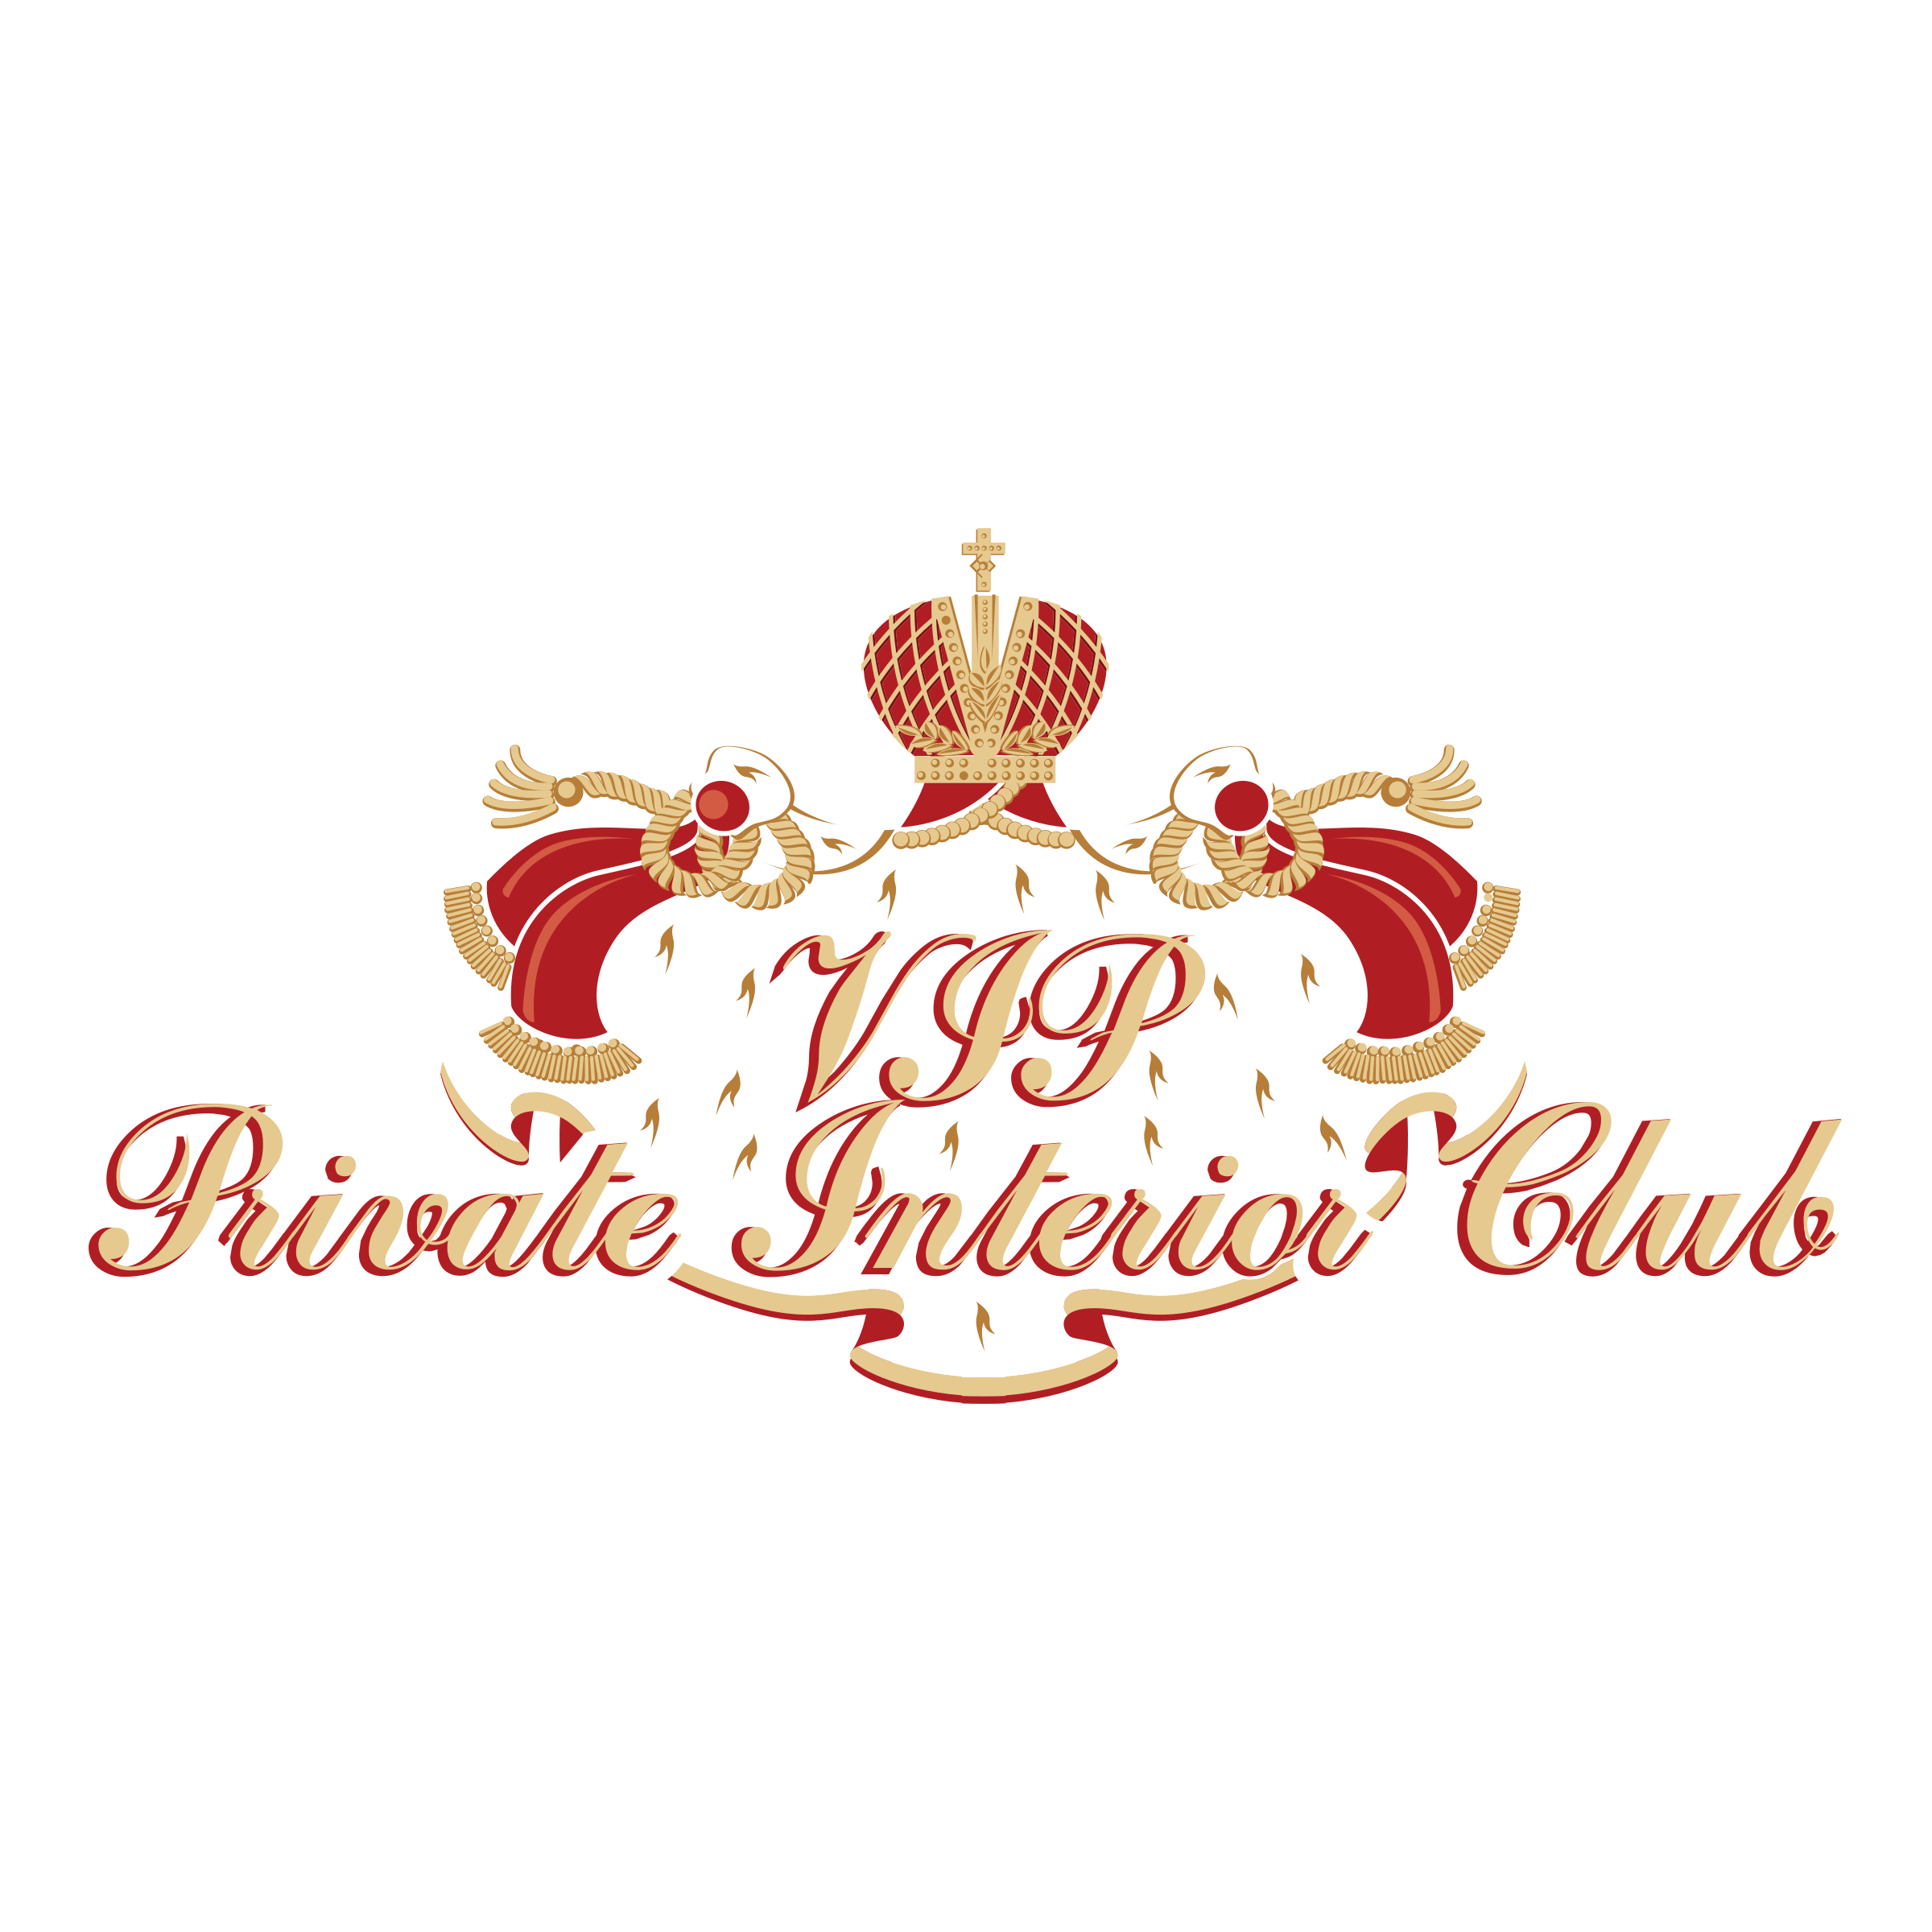 Mall clipart interior vector. Vip privat club logo